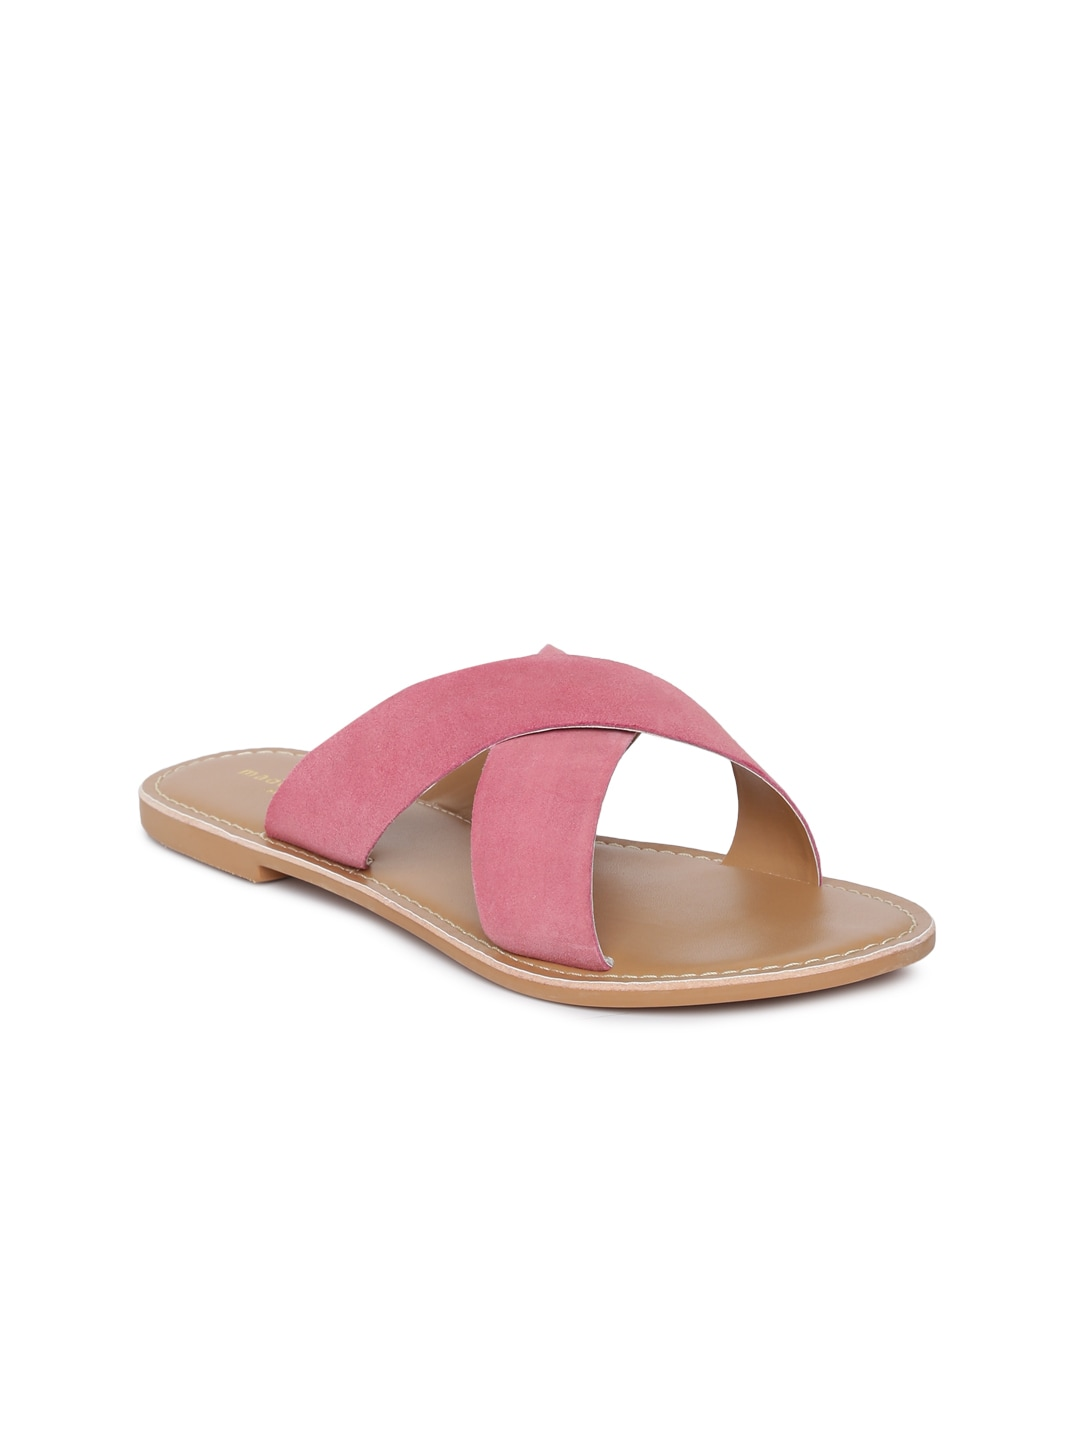 9c6f5d12bd5 Steve Madden - Buy Steve Madden Products Online In India